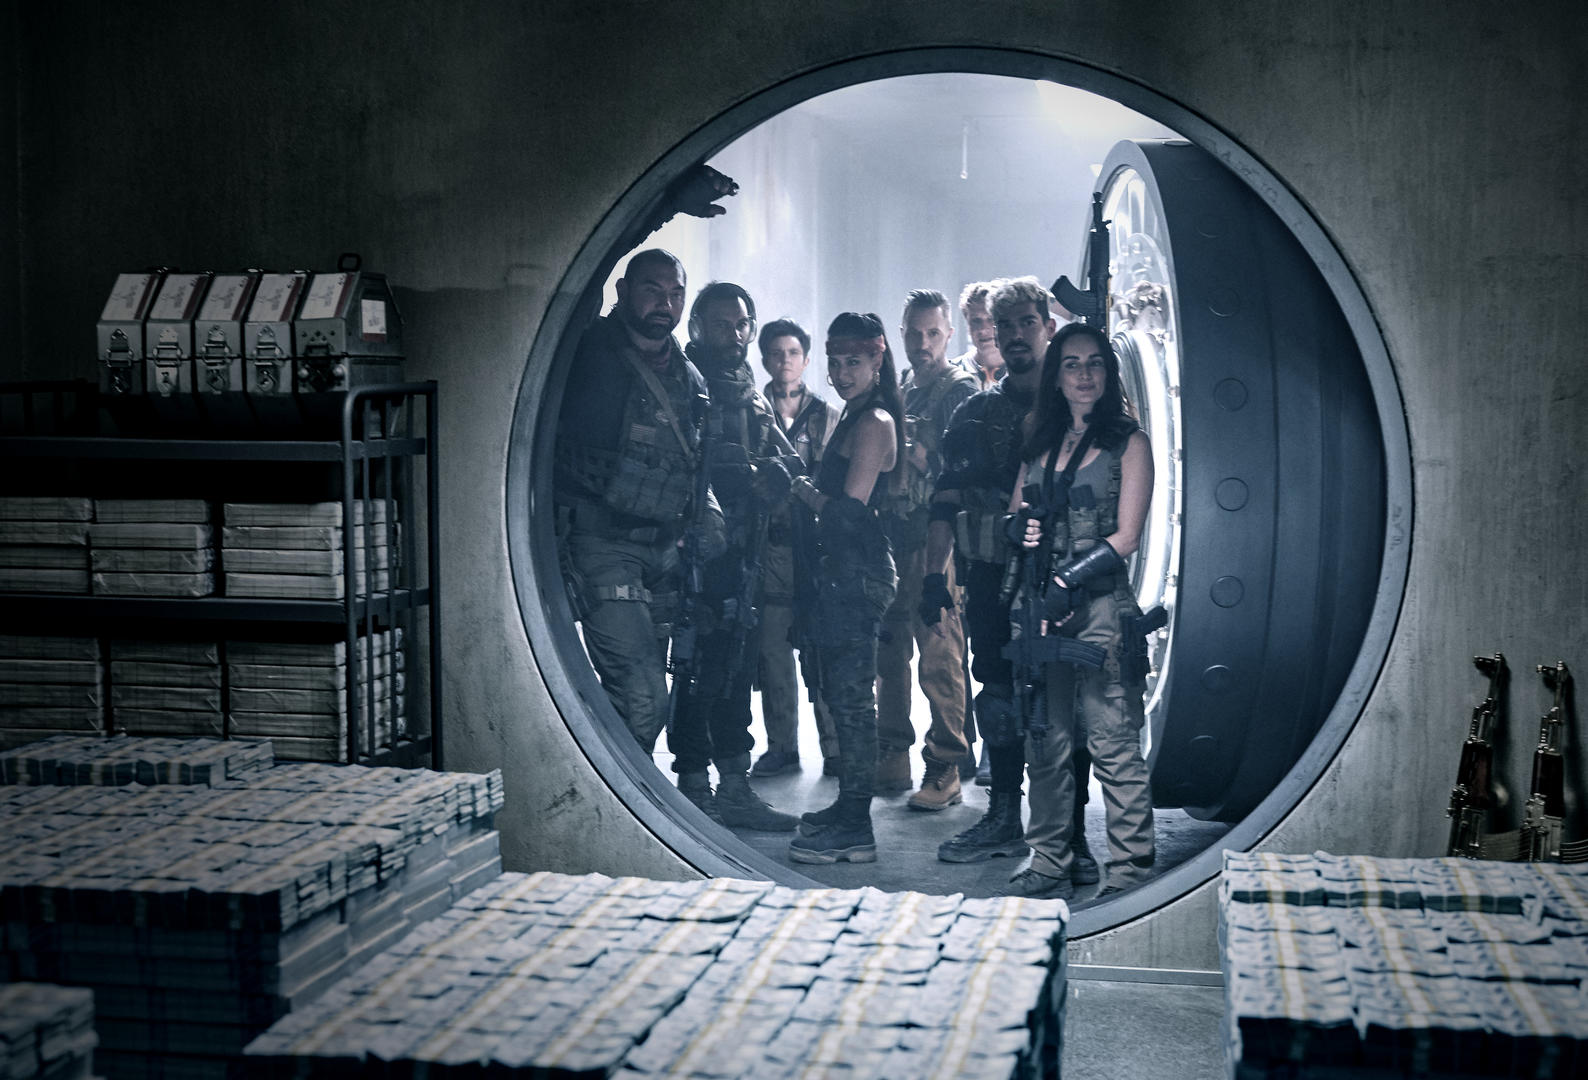 army-of-the-dead-film-2021-3